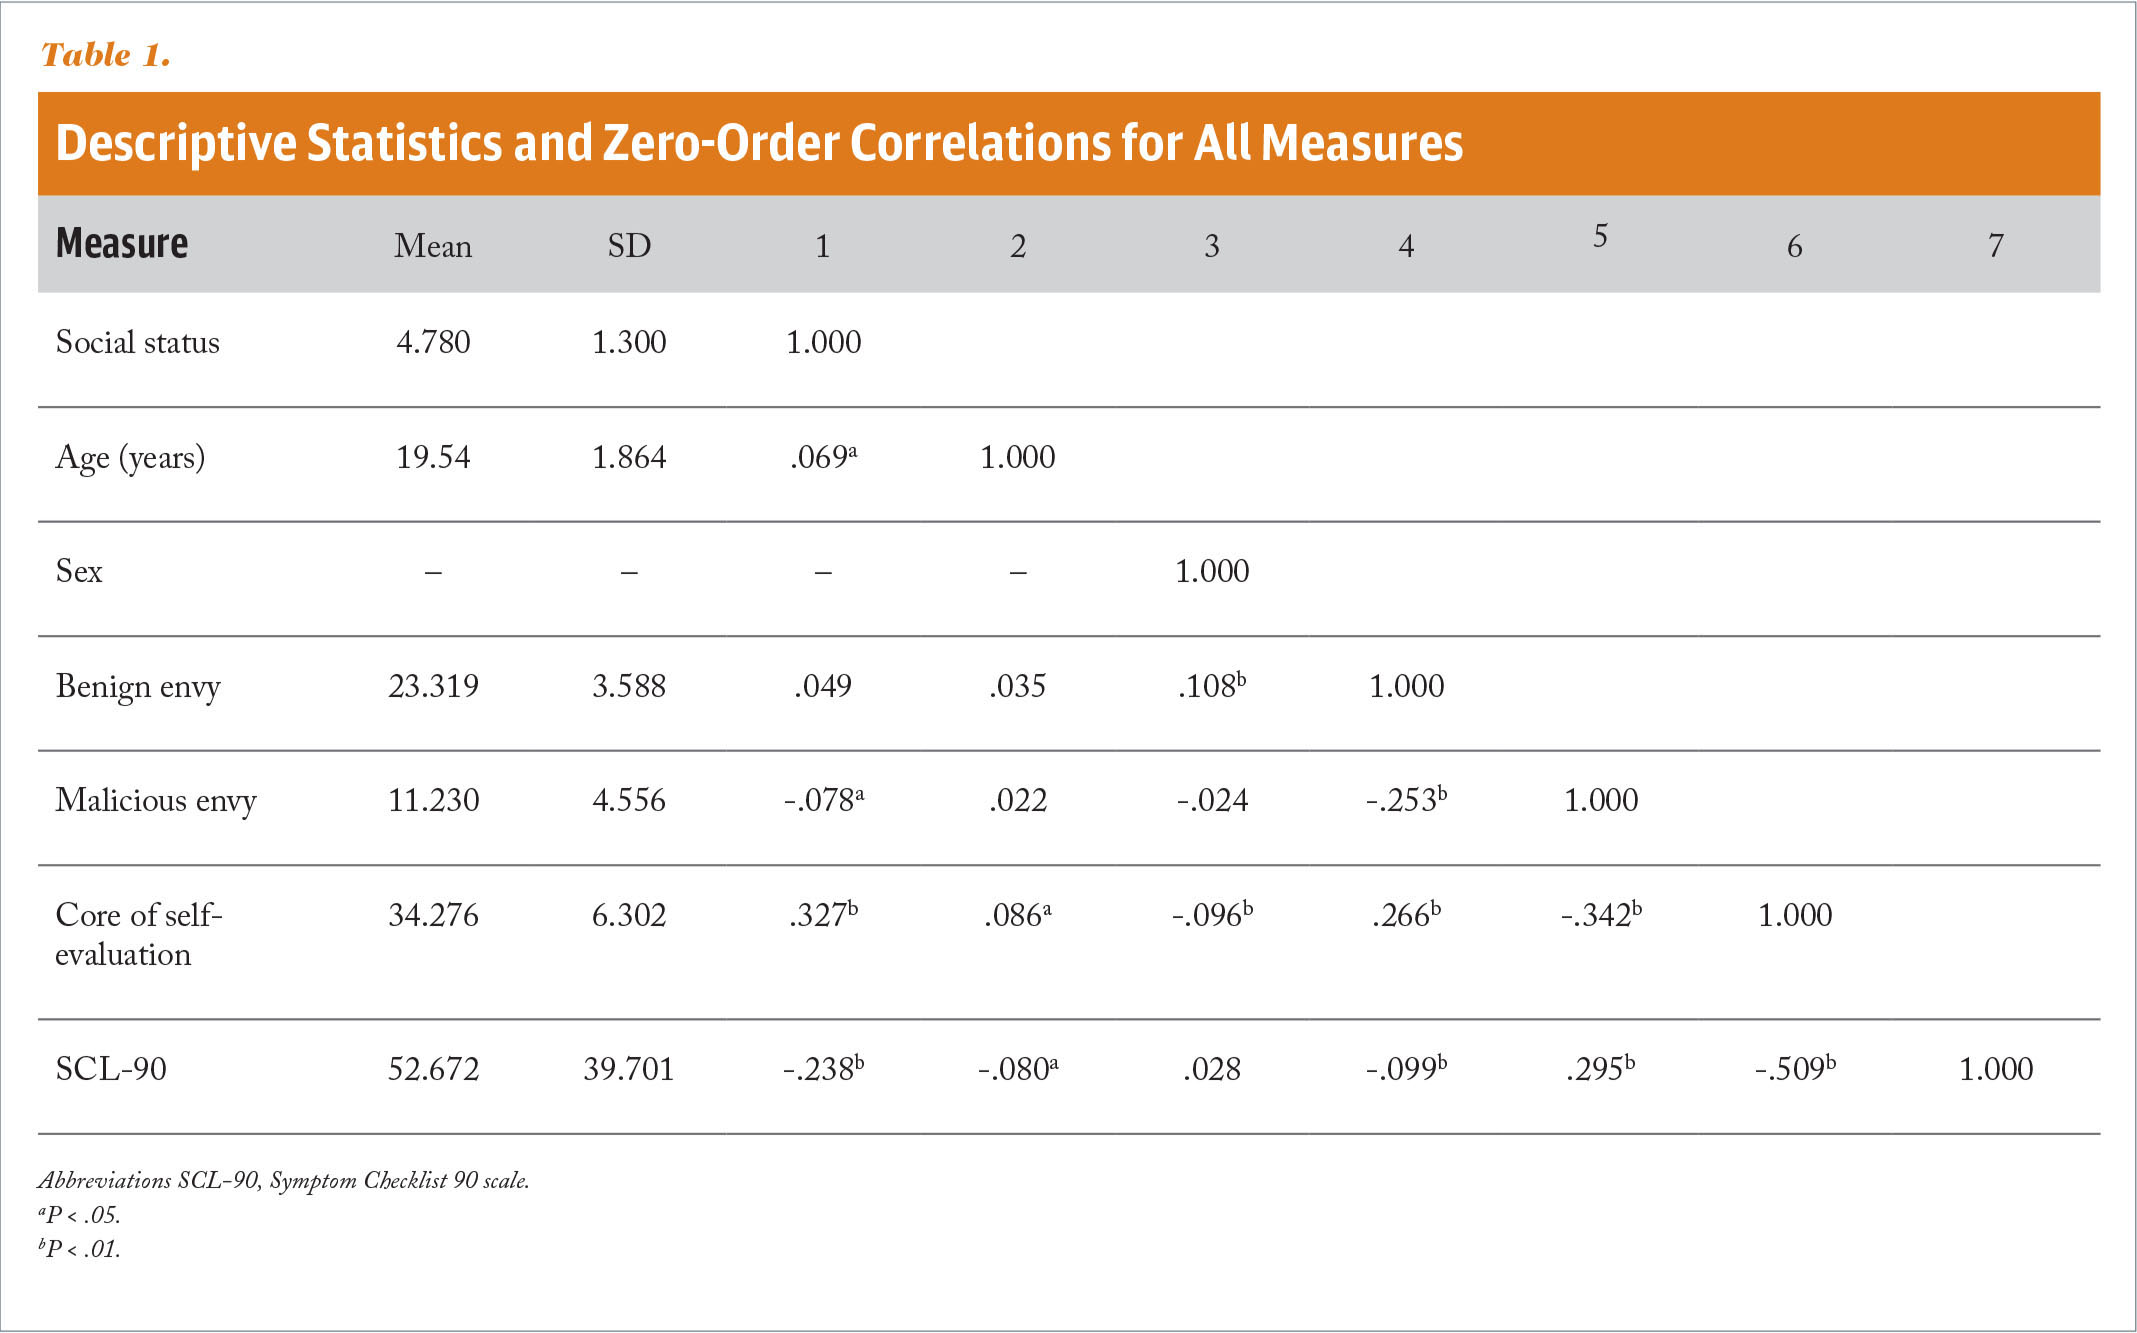 Descriptive Statistics and Zero-Order Correlations for All Measures